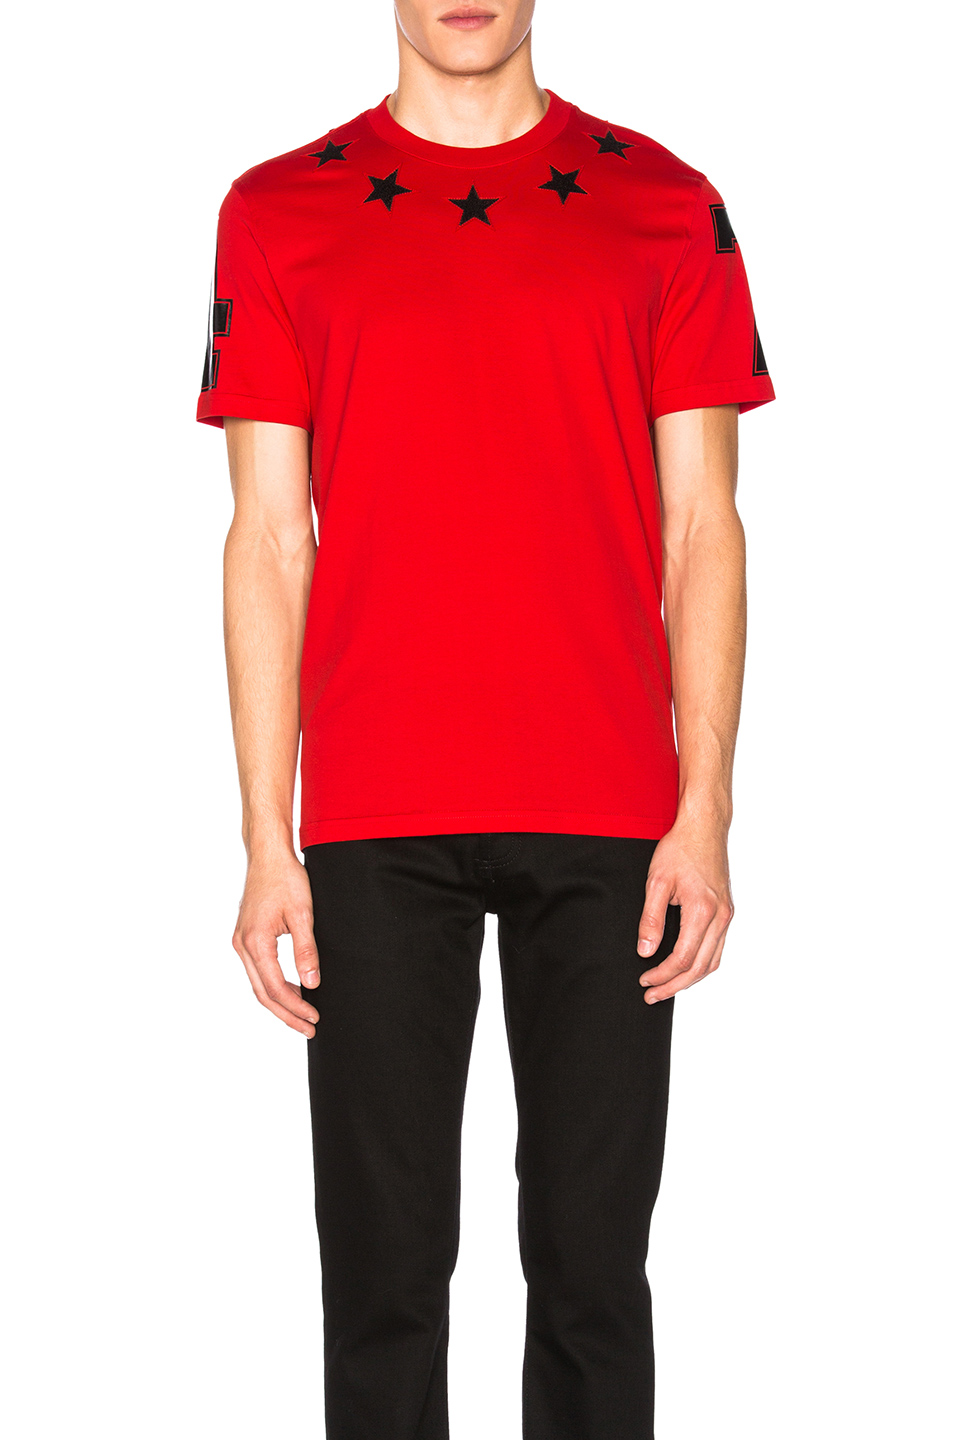 Givenchy Star Collar Tee in Red